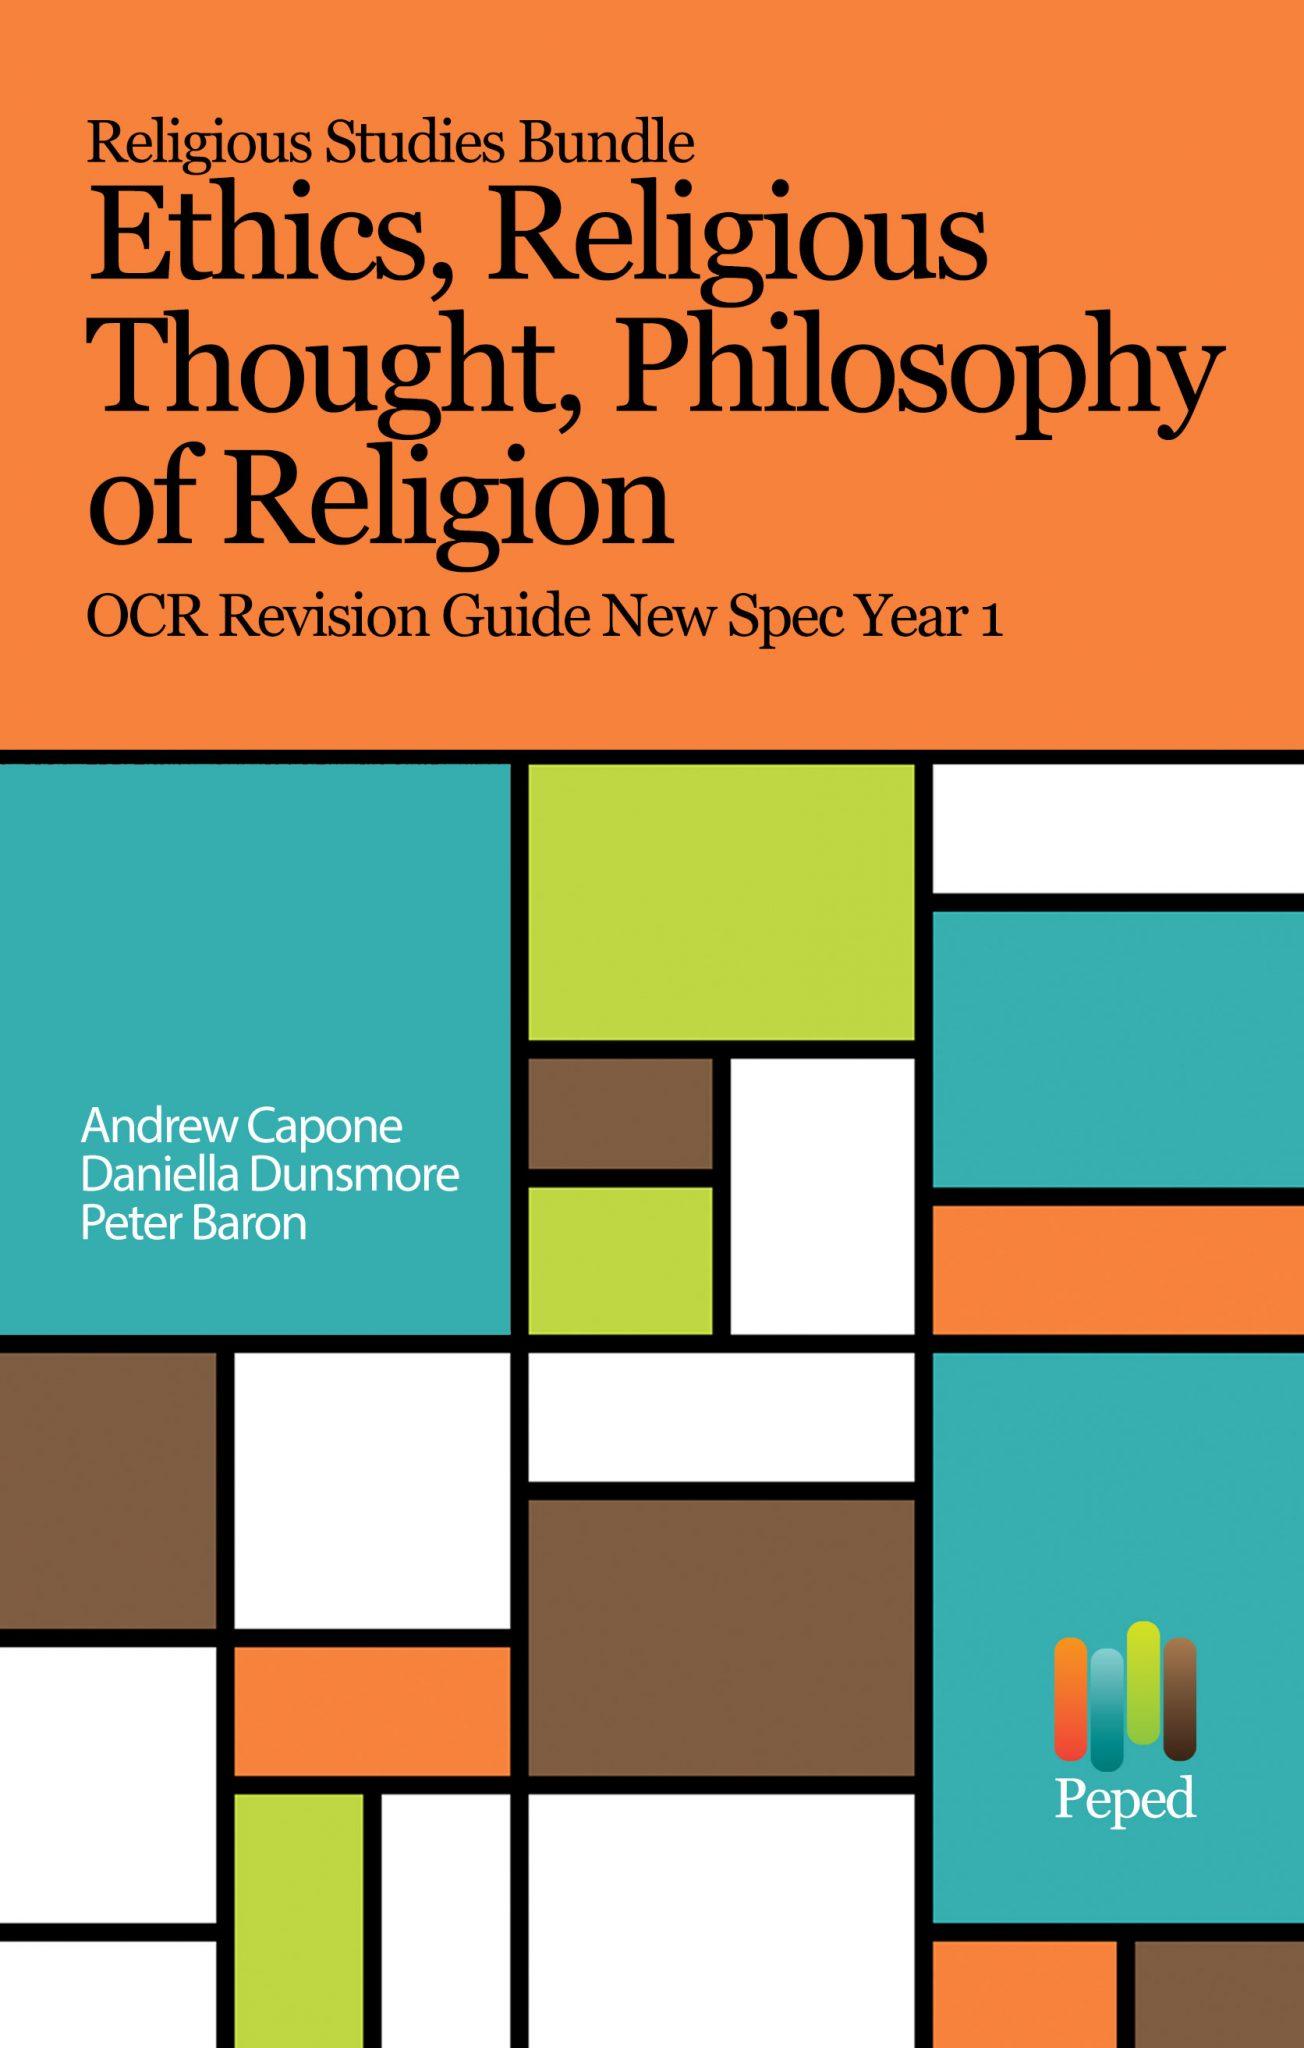 educational teaching resources religious studies bundle ethics religious thought philosophy of religion ocr revision guide new